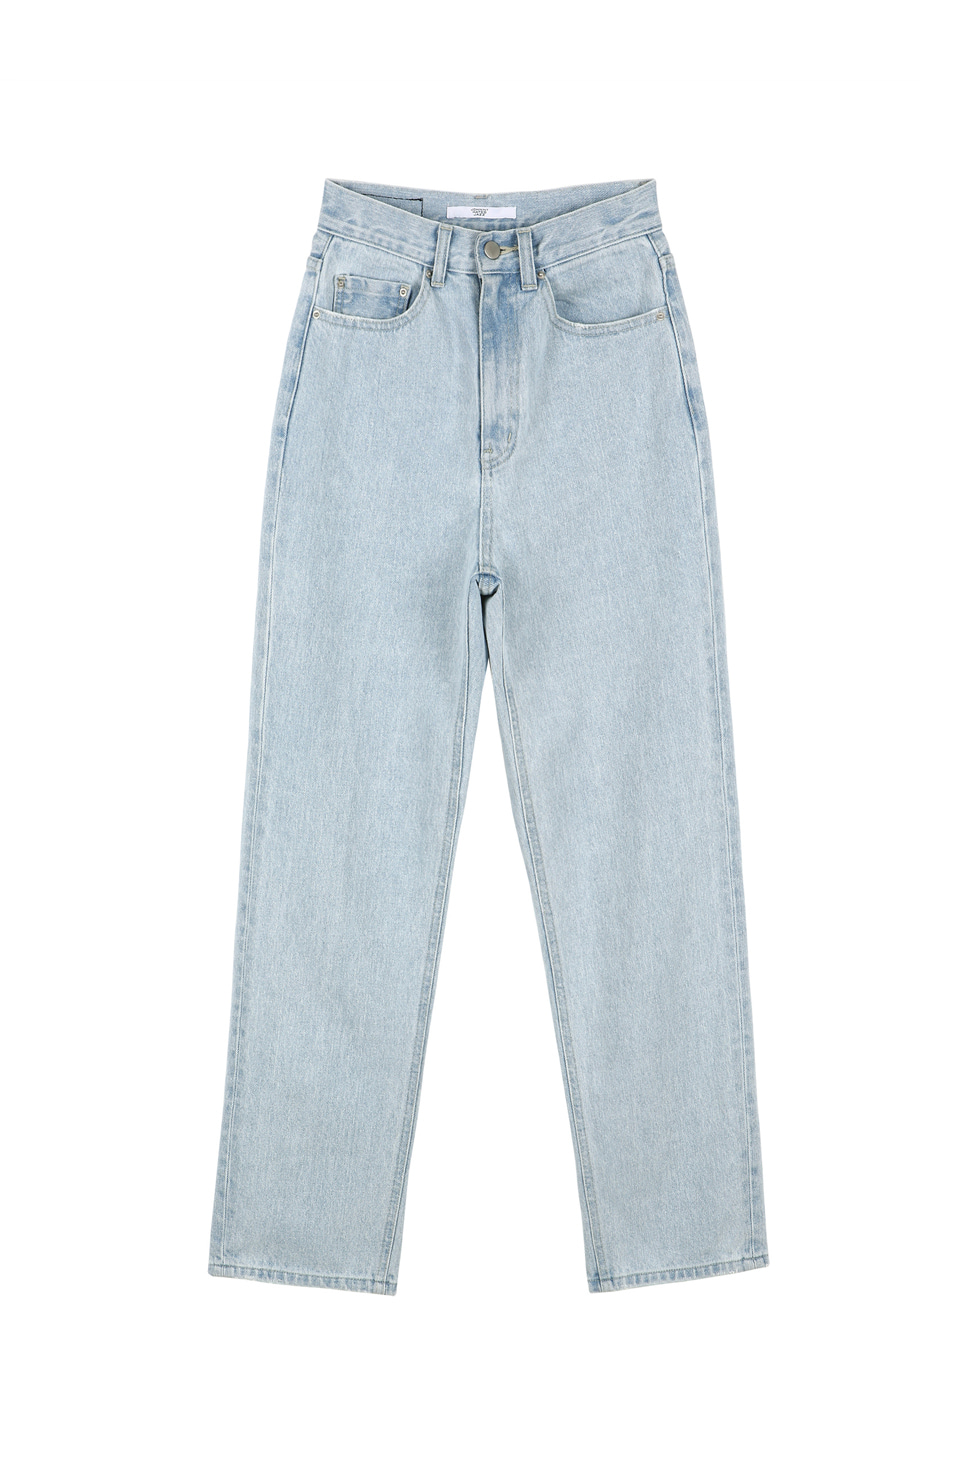 HIGH WAIST DENIM PANTS - LIGHT BLUE